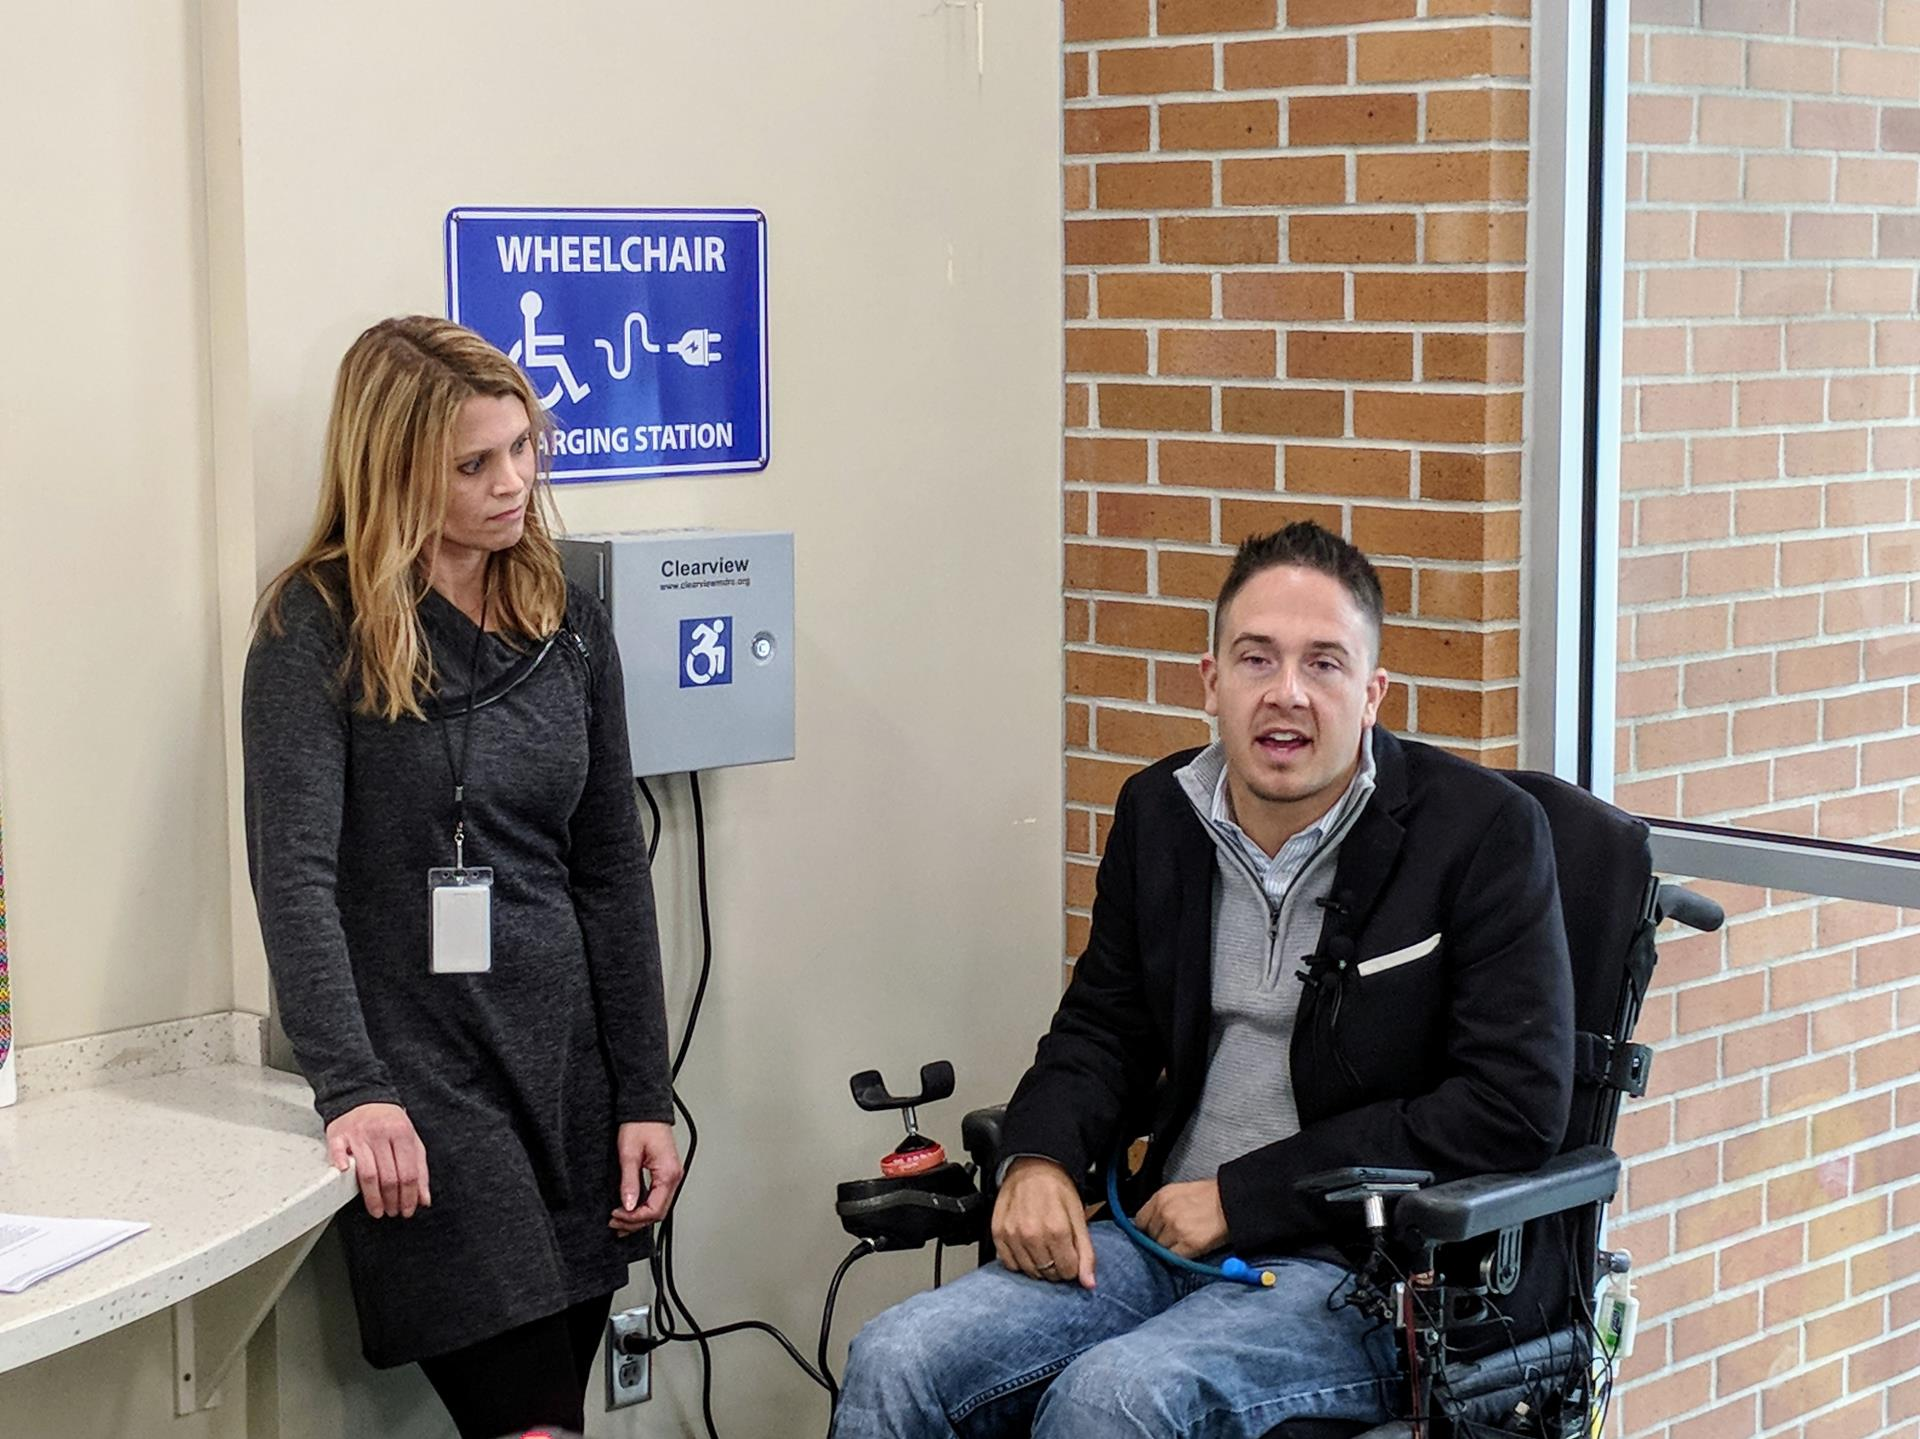 Wheelchair Charging Station with Alex Watters